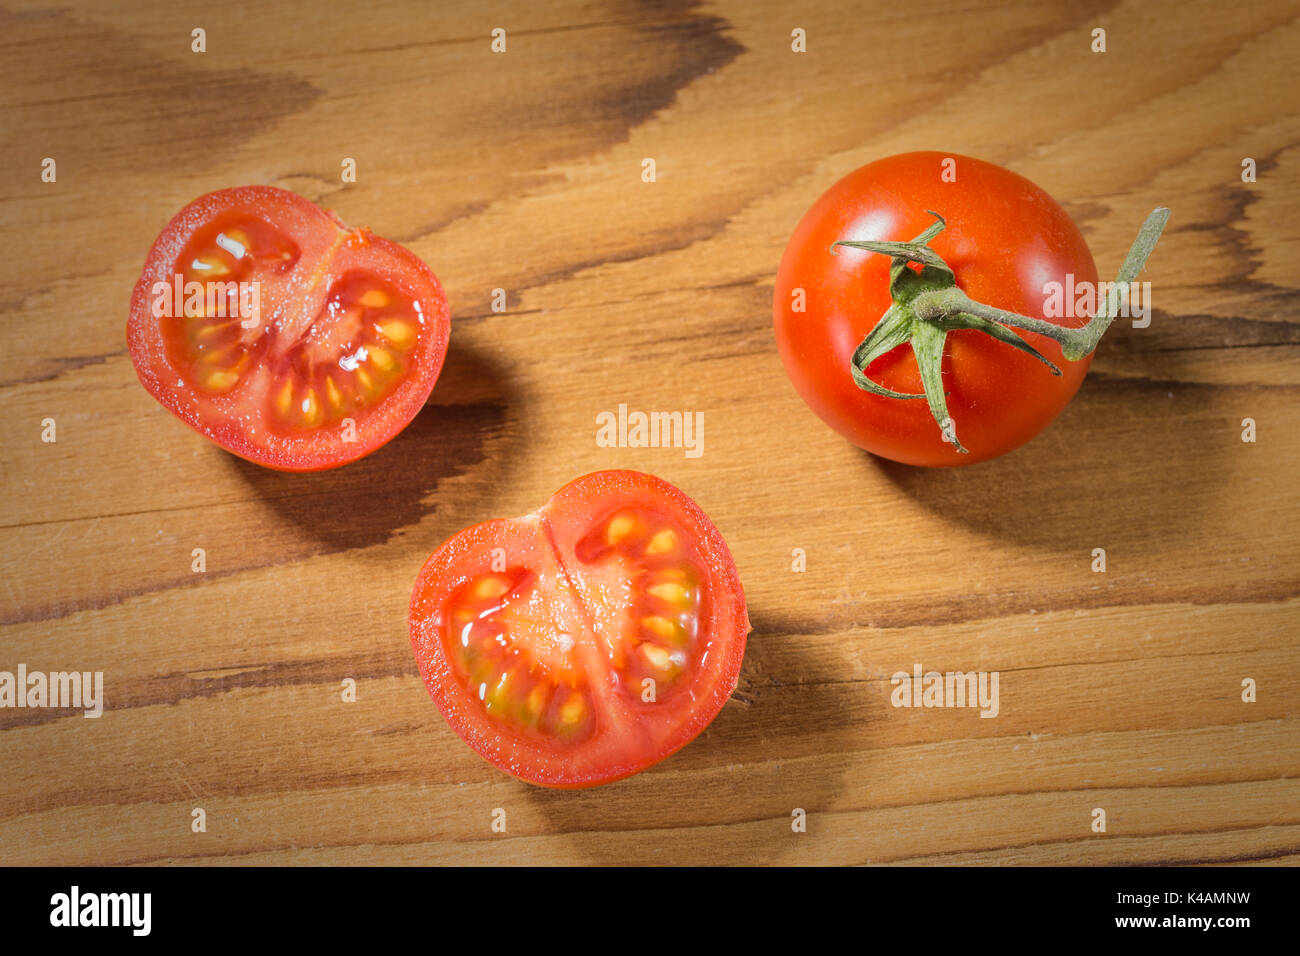 Tomatoes Against Wooden Backgroundw - Stock Image